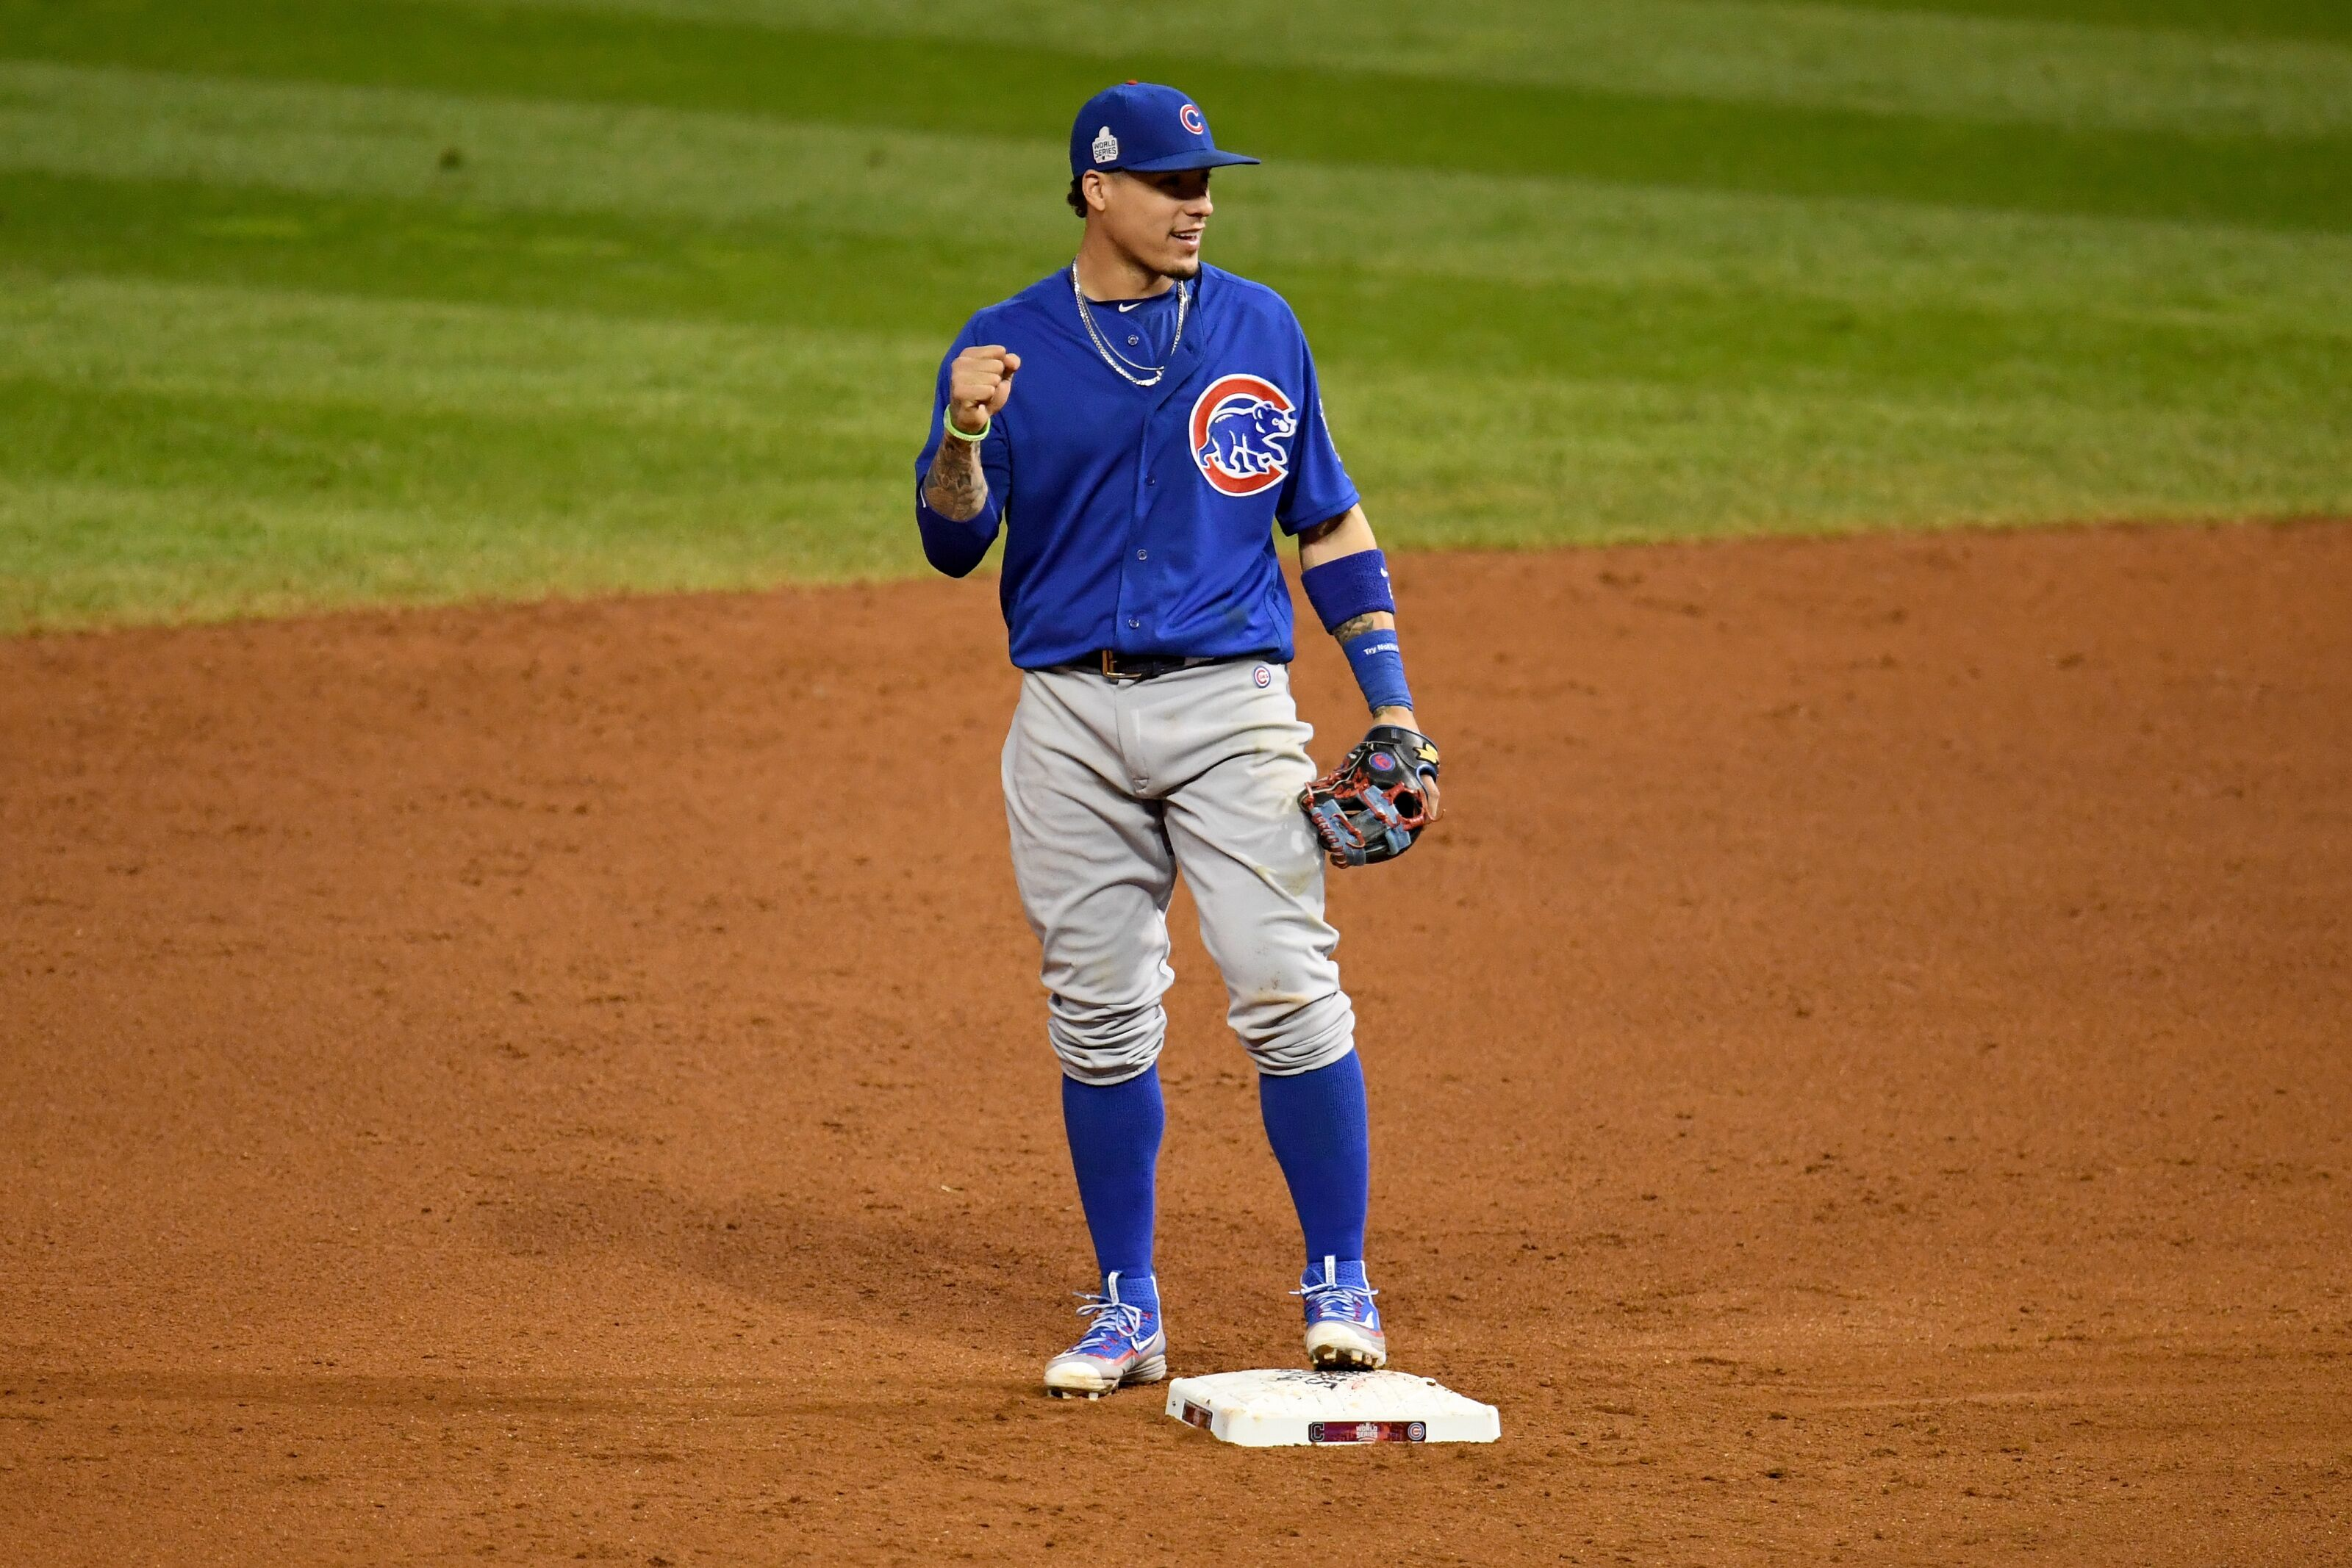 Cubs Rumors: Now is the perfect time to extend Javy Baez